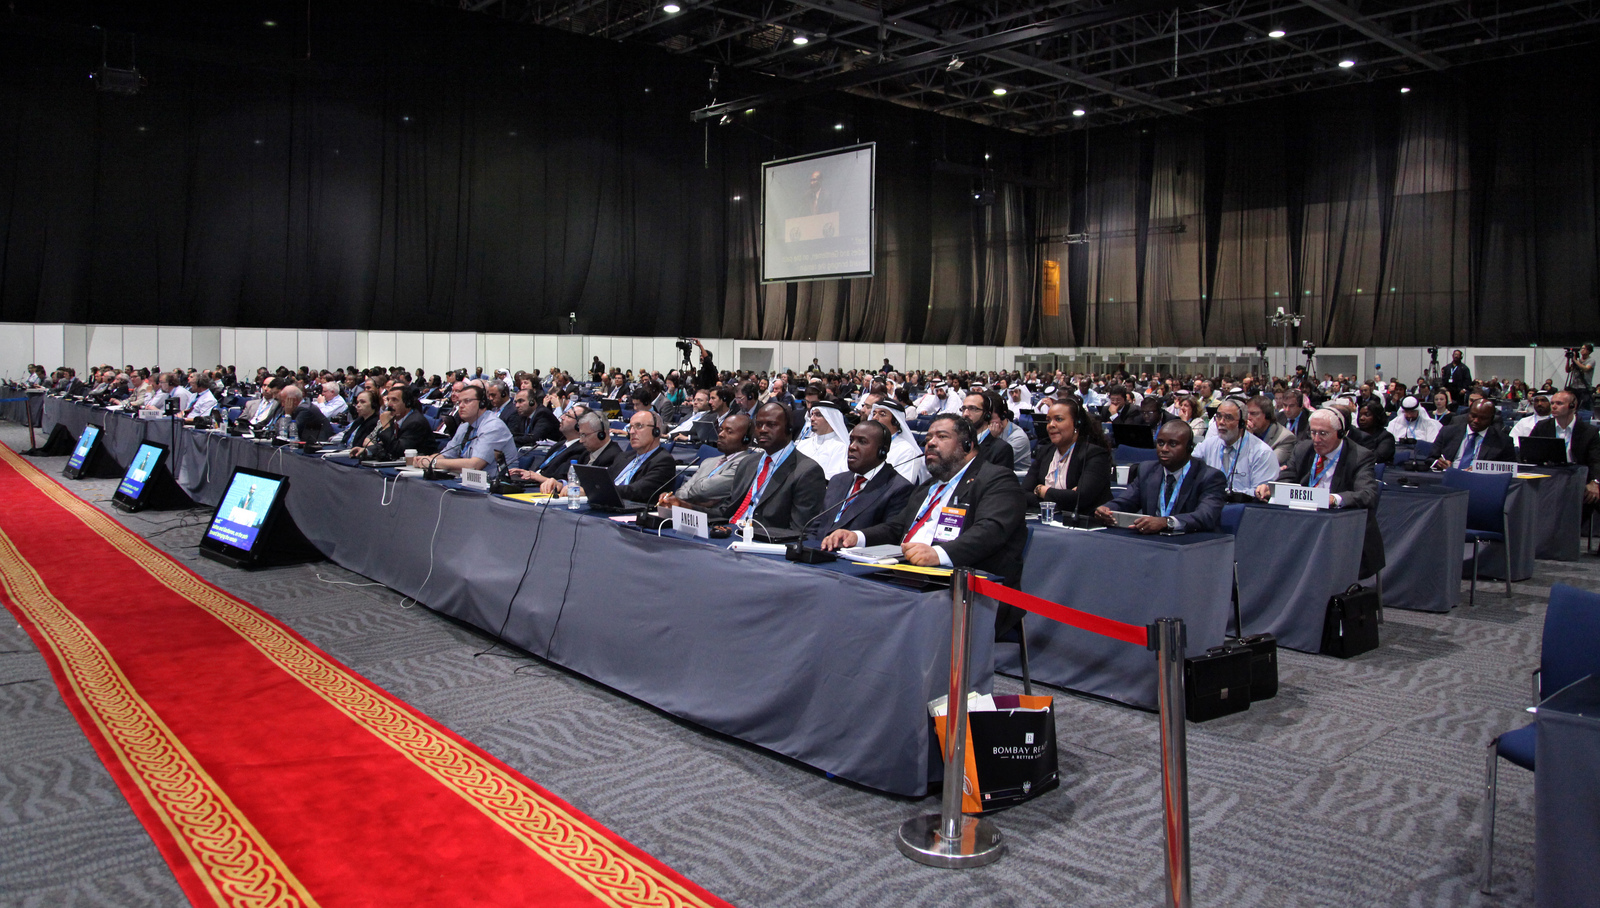 Delegates to the Dubai summit at last Friday's closing ceremonies, after the U.S. and other nations had refused to sign the treaty.